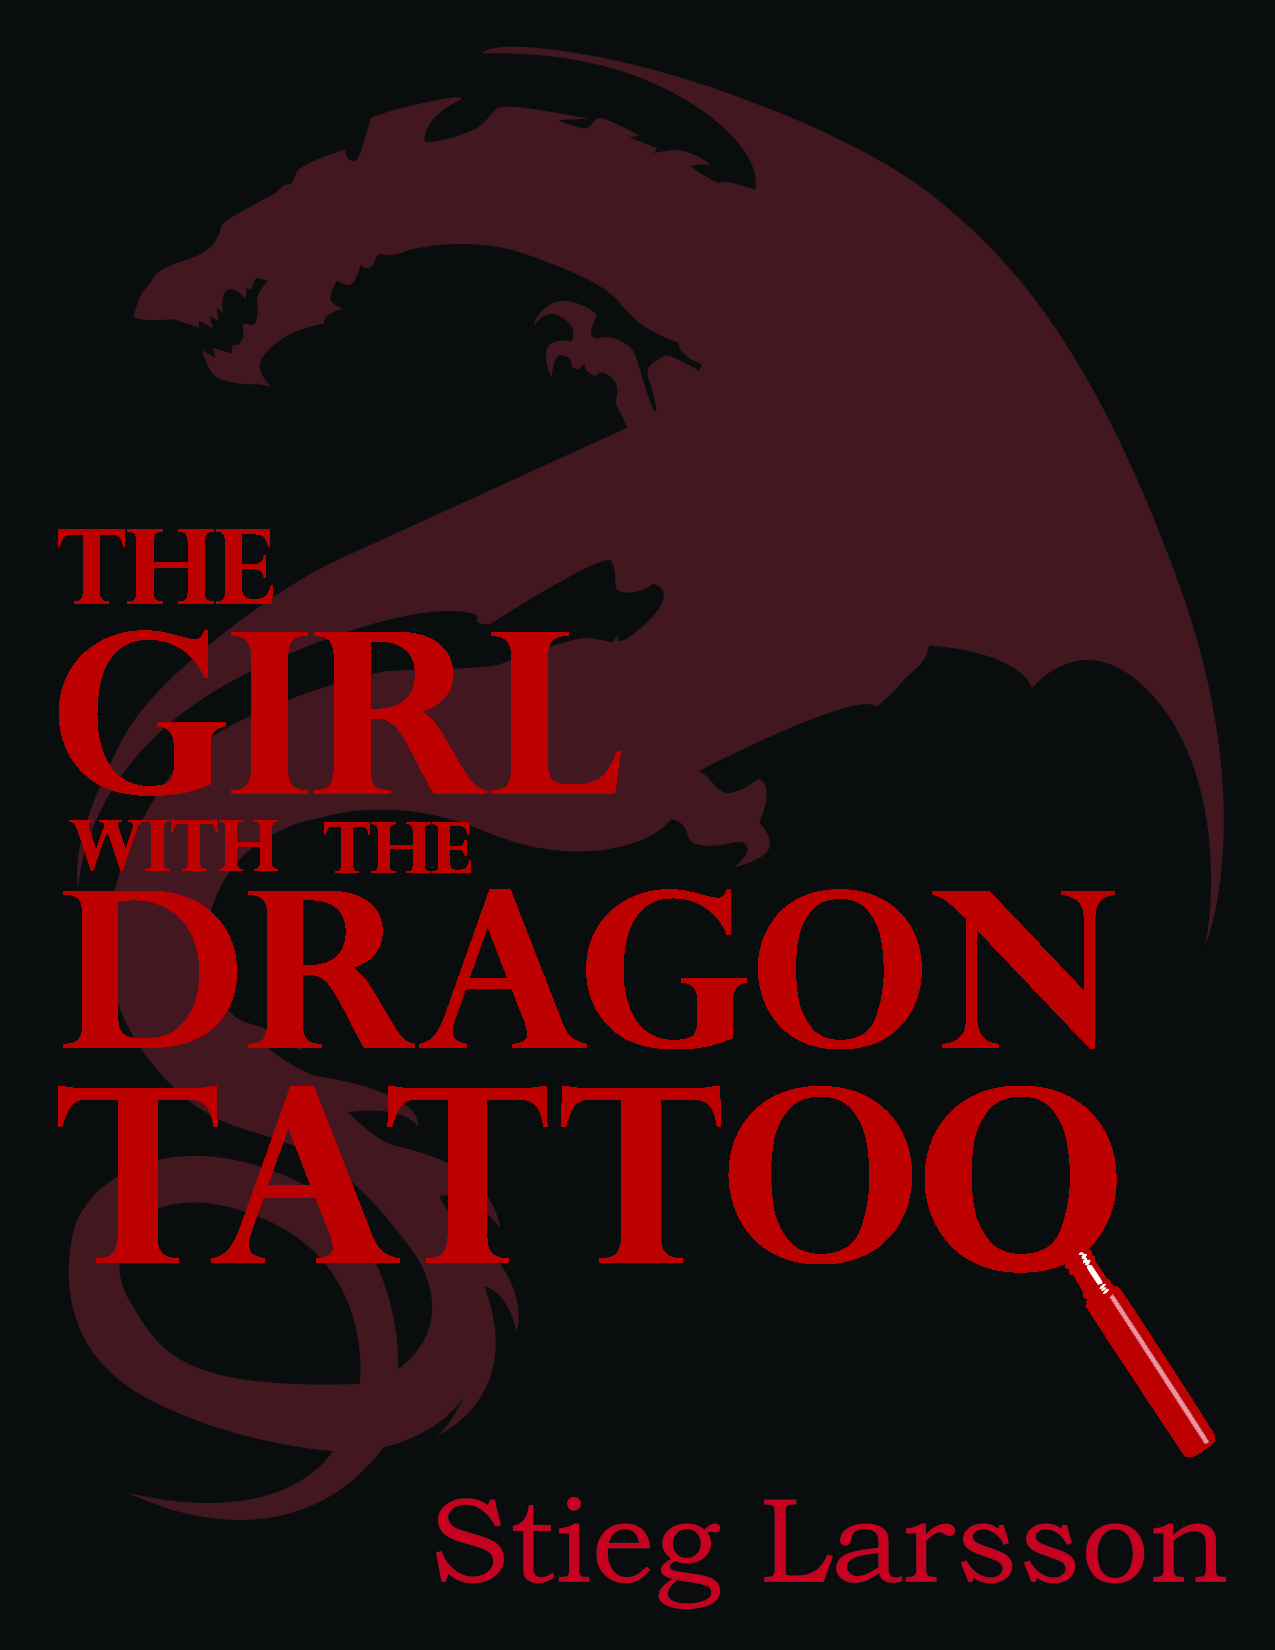 The Girl with the Dragon Tattoo BookCover